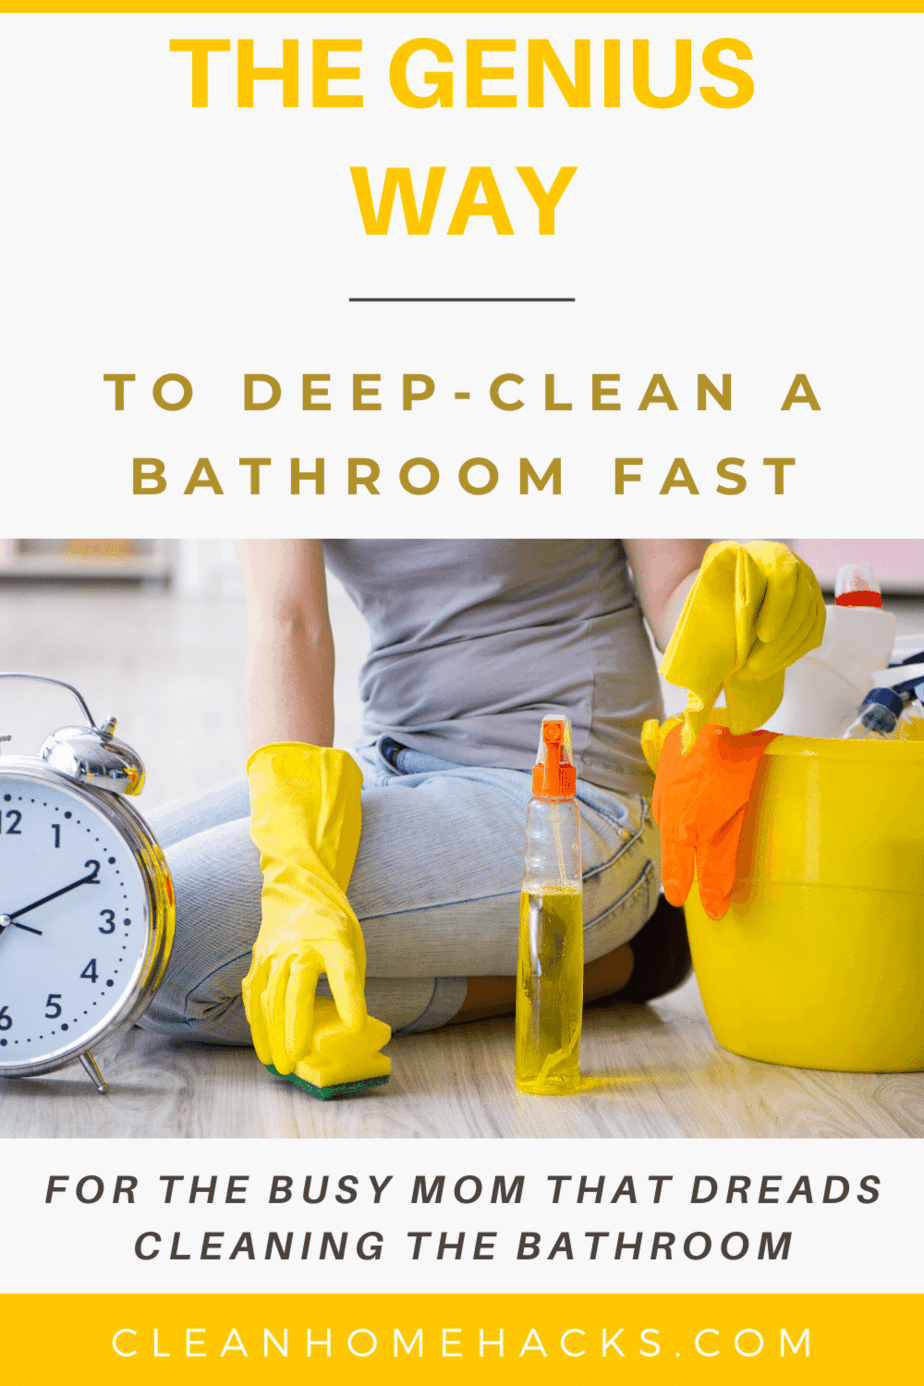 pinterest image for the genius way to clean a bathroom fast with woman sitting on floor by cleaning supplies and clock